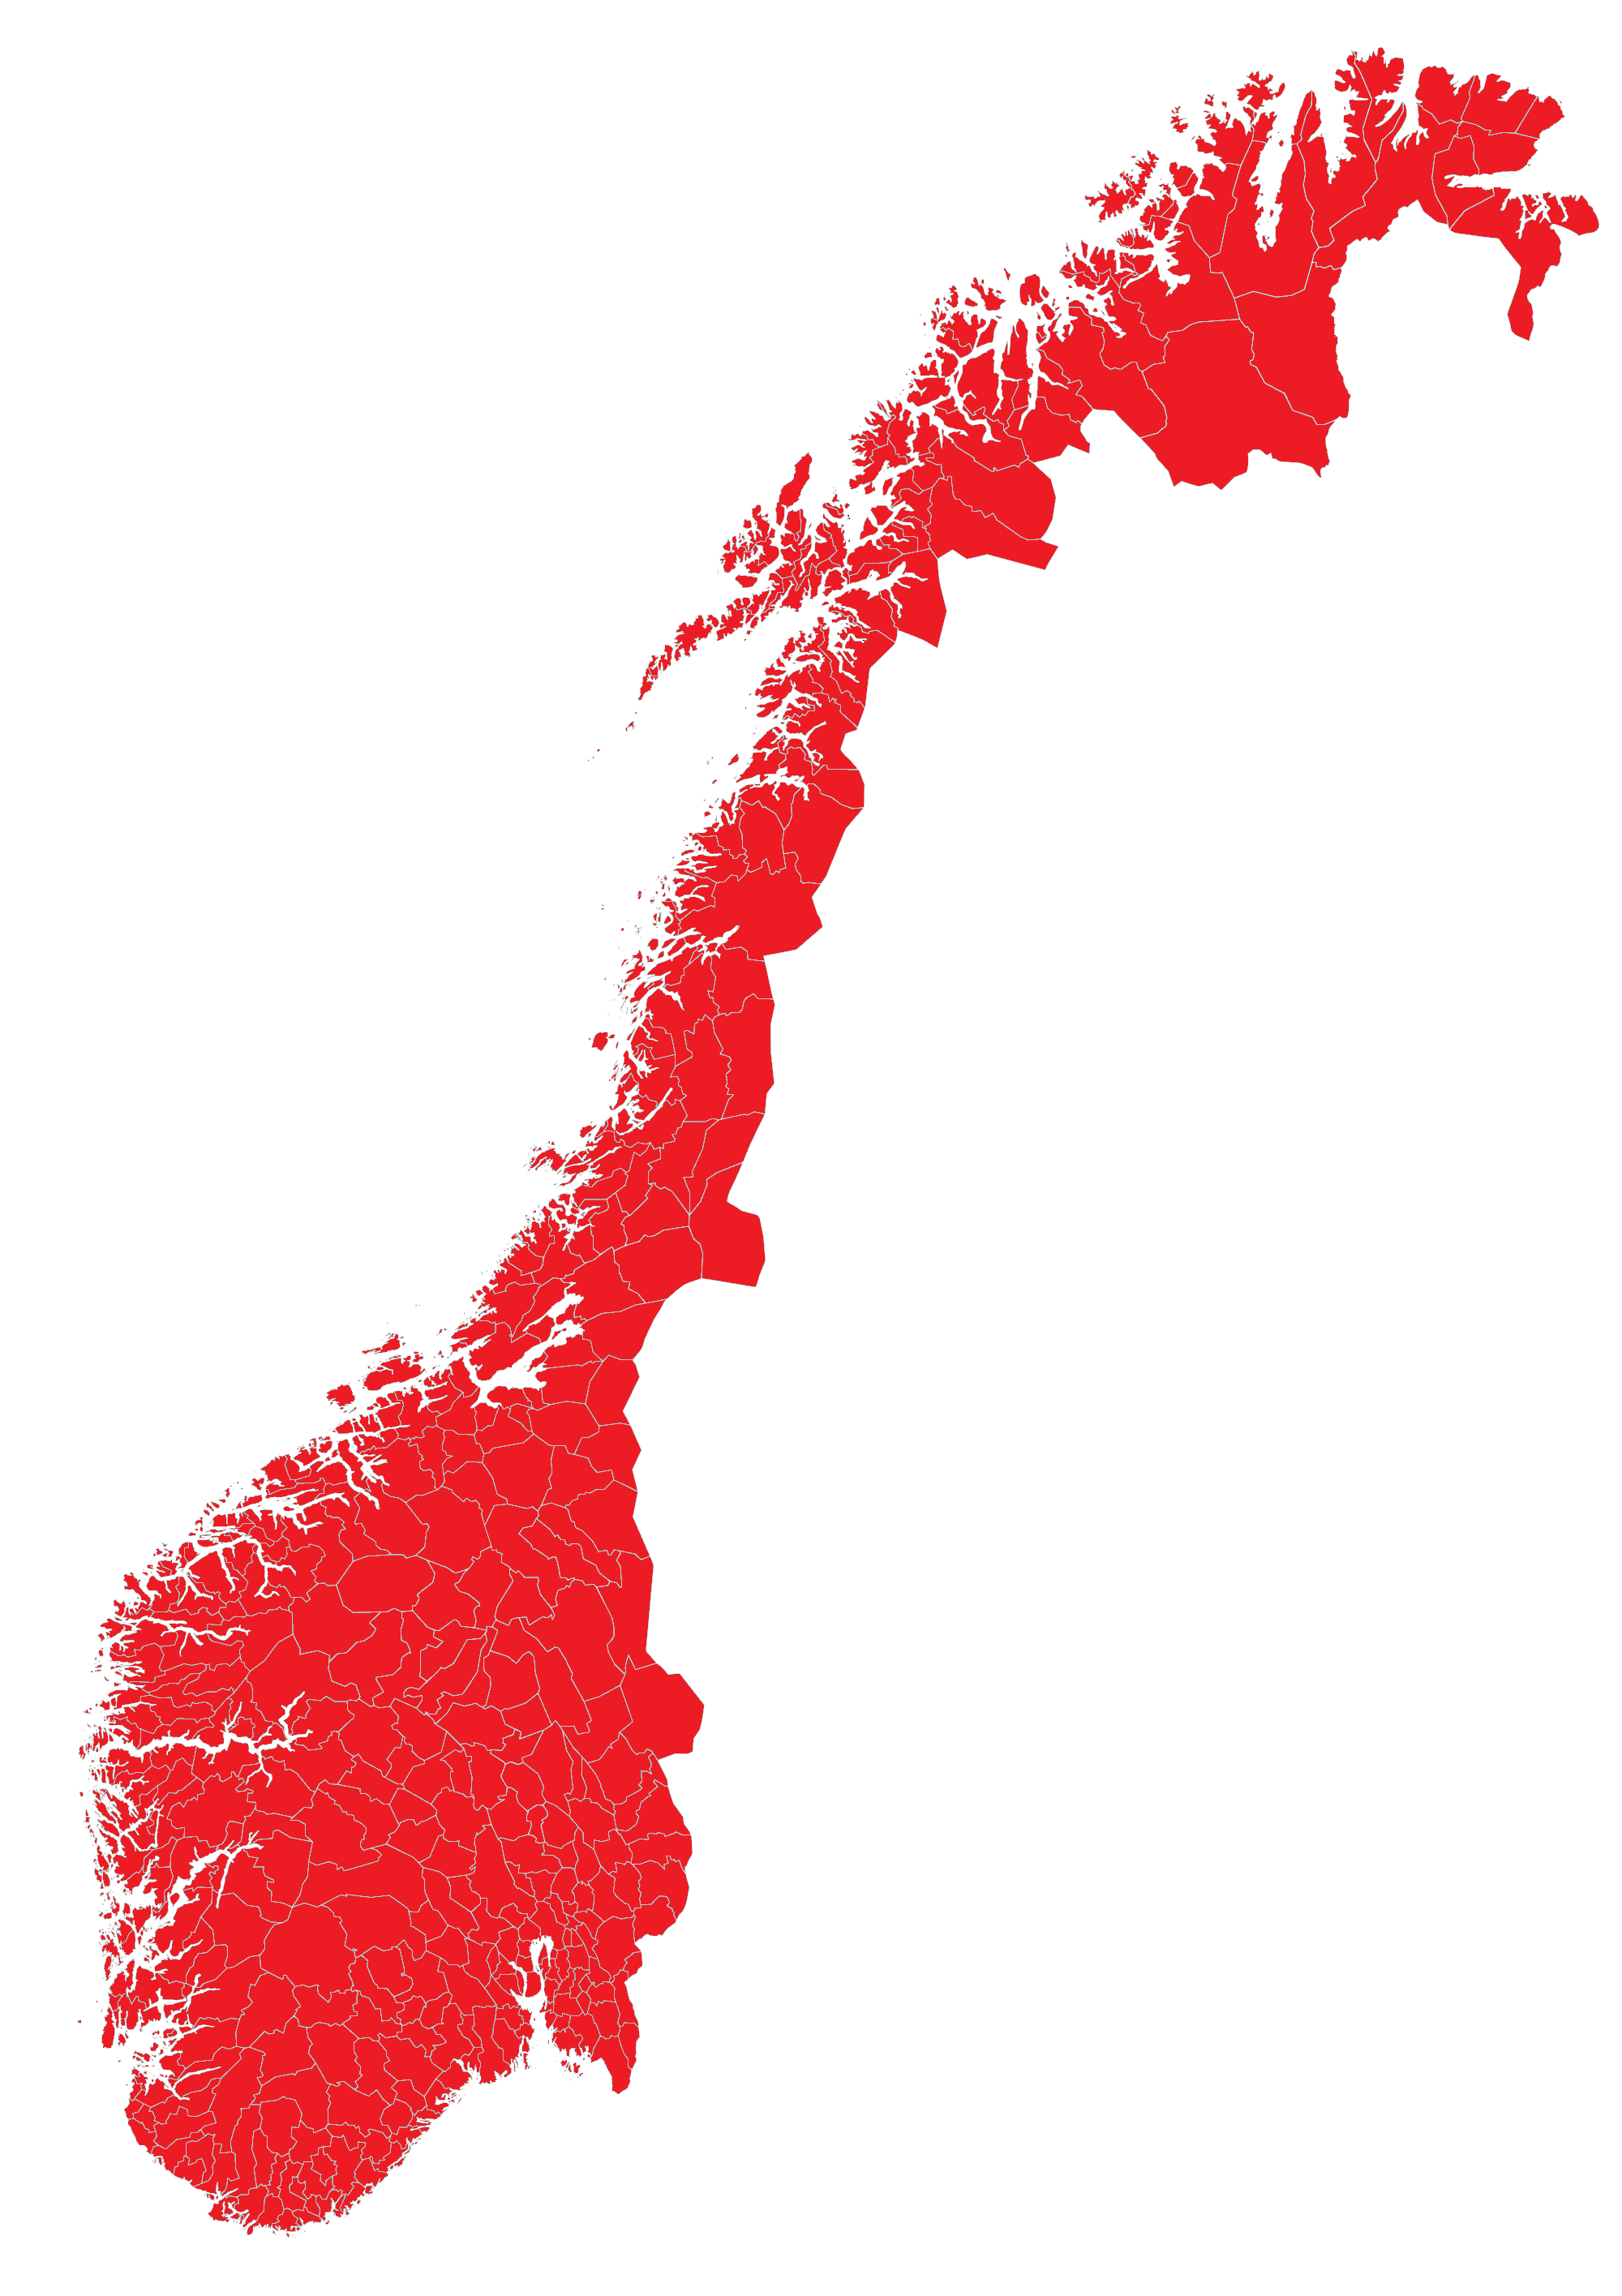 Covid 19 Pandemic In Norway Wikipedia